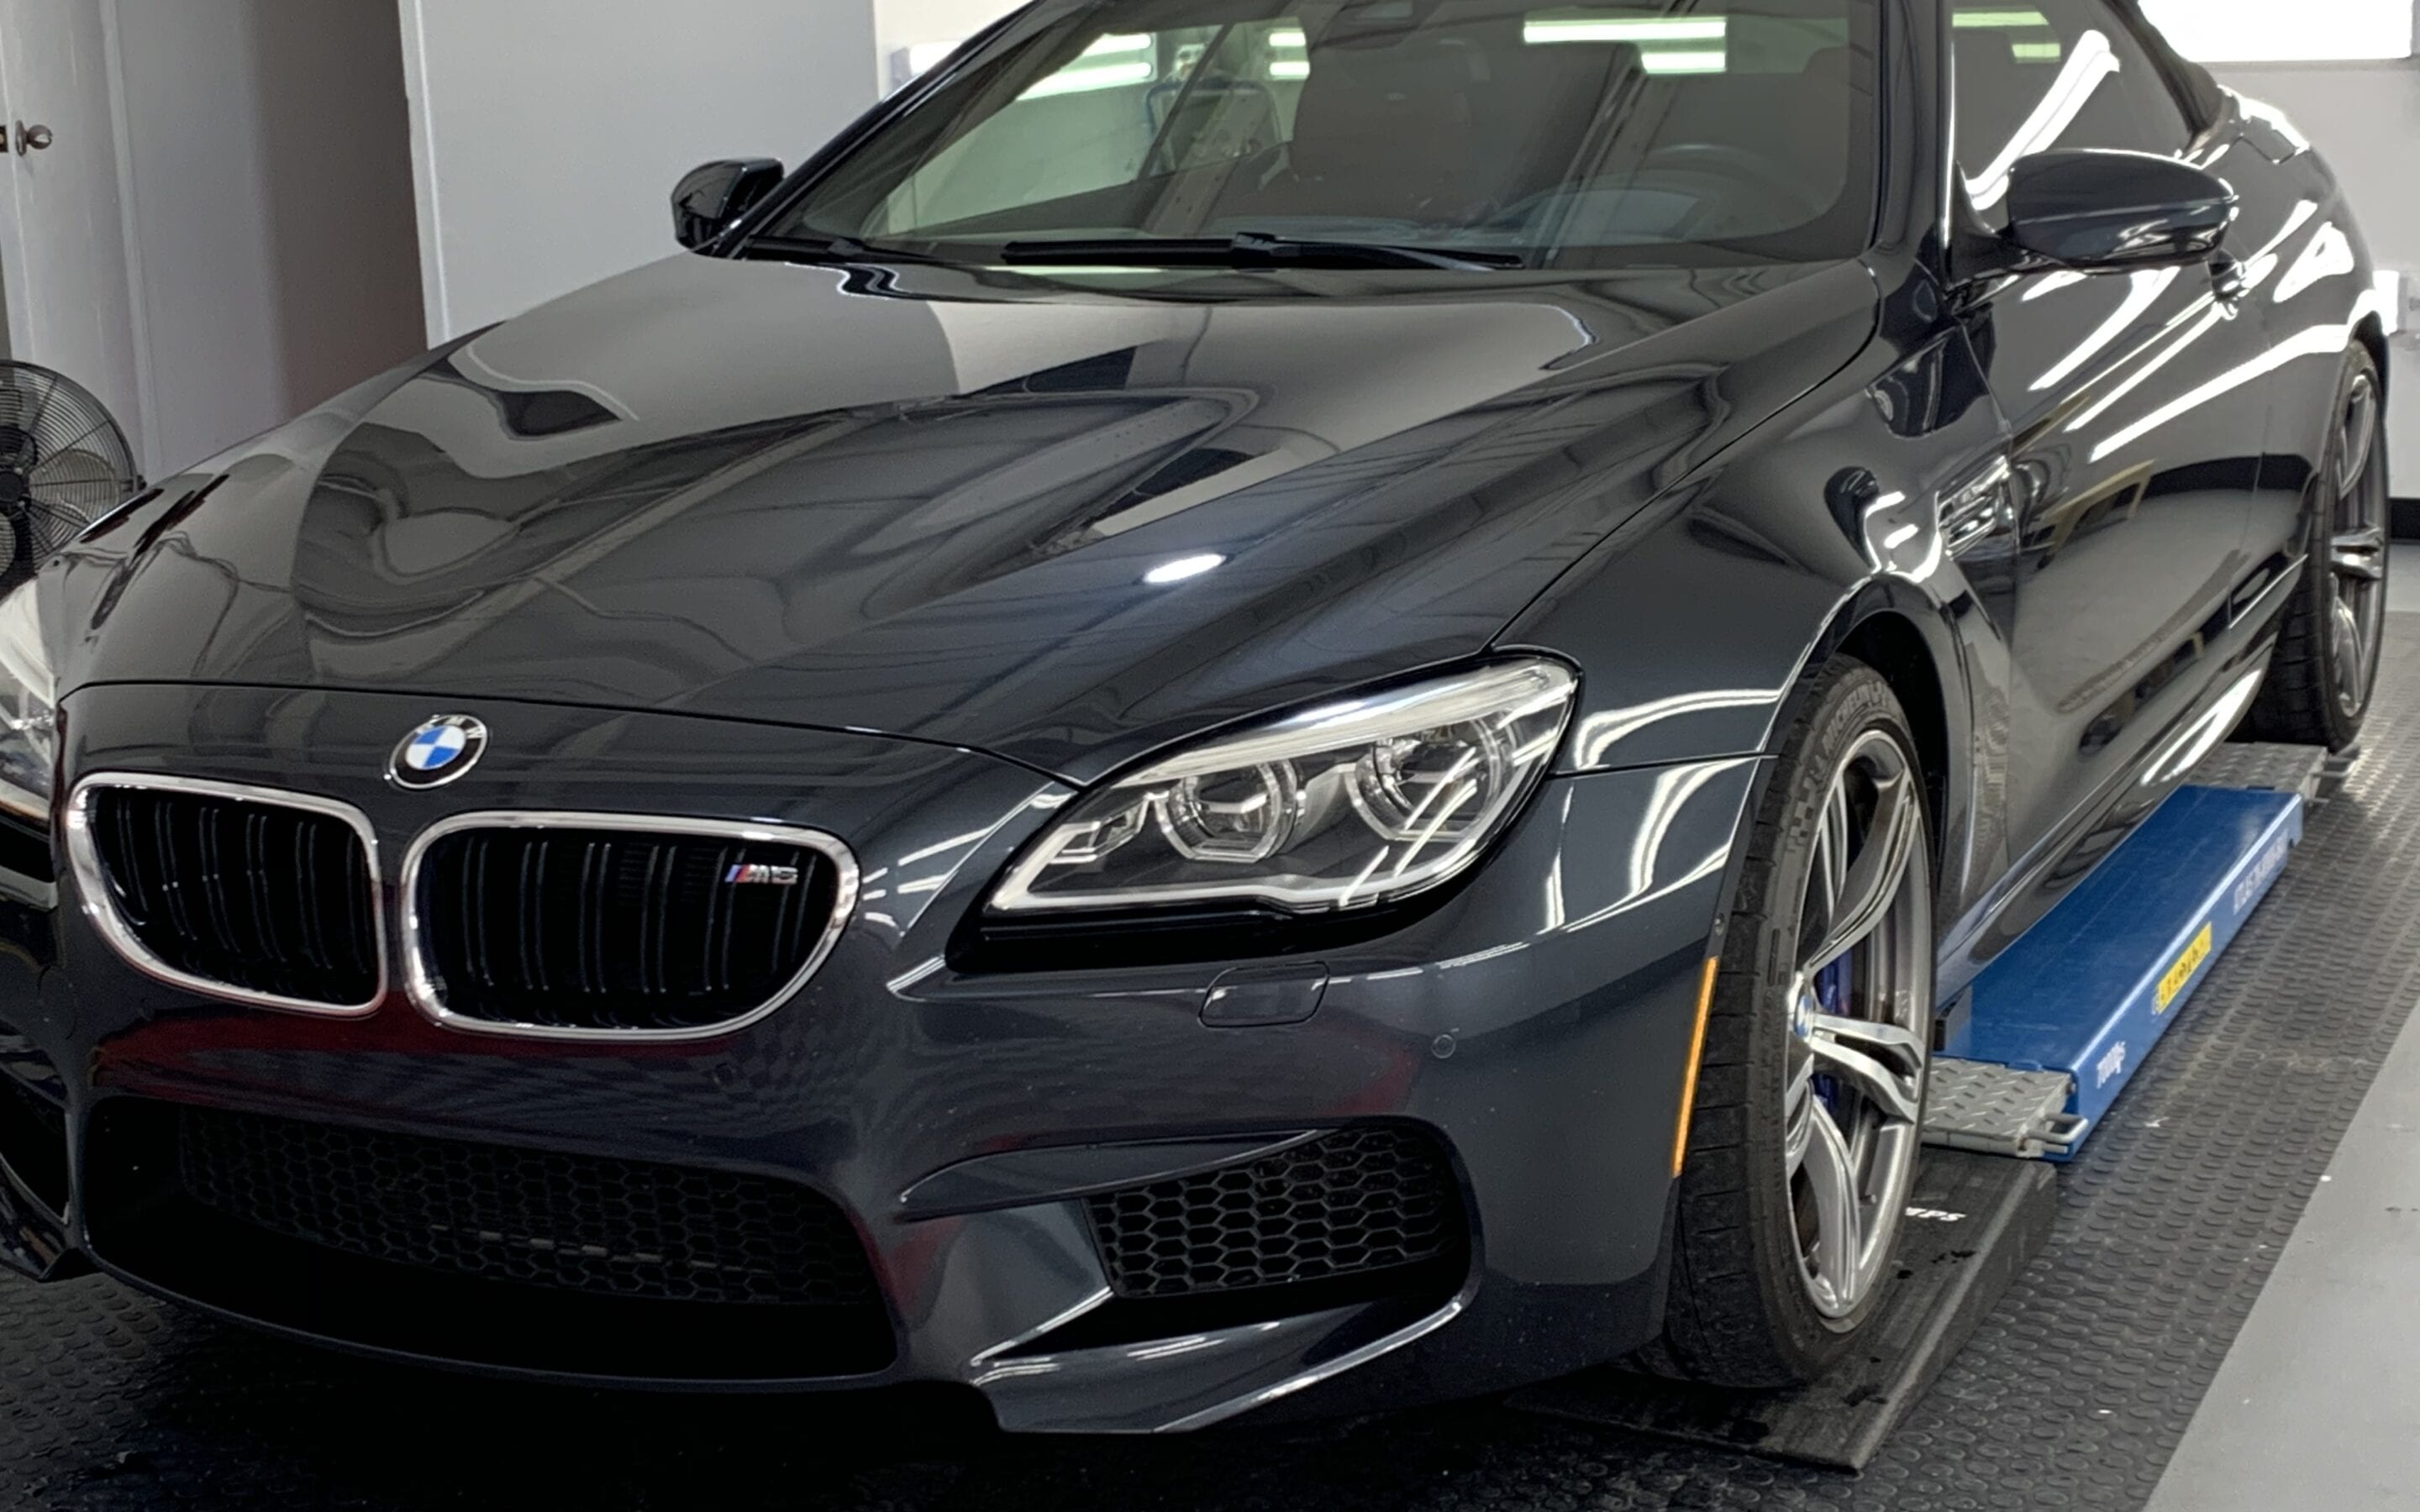 Photo of a Ceramic Coating of a 2018 BMW 6-Series M6